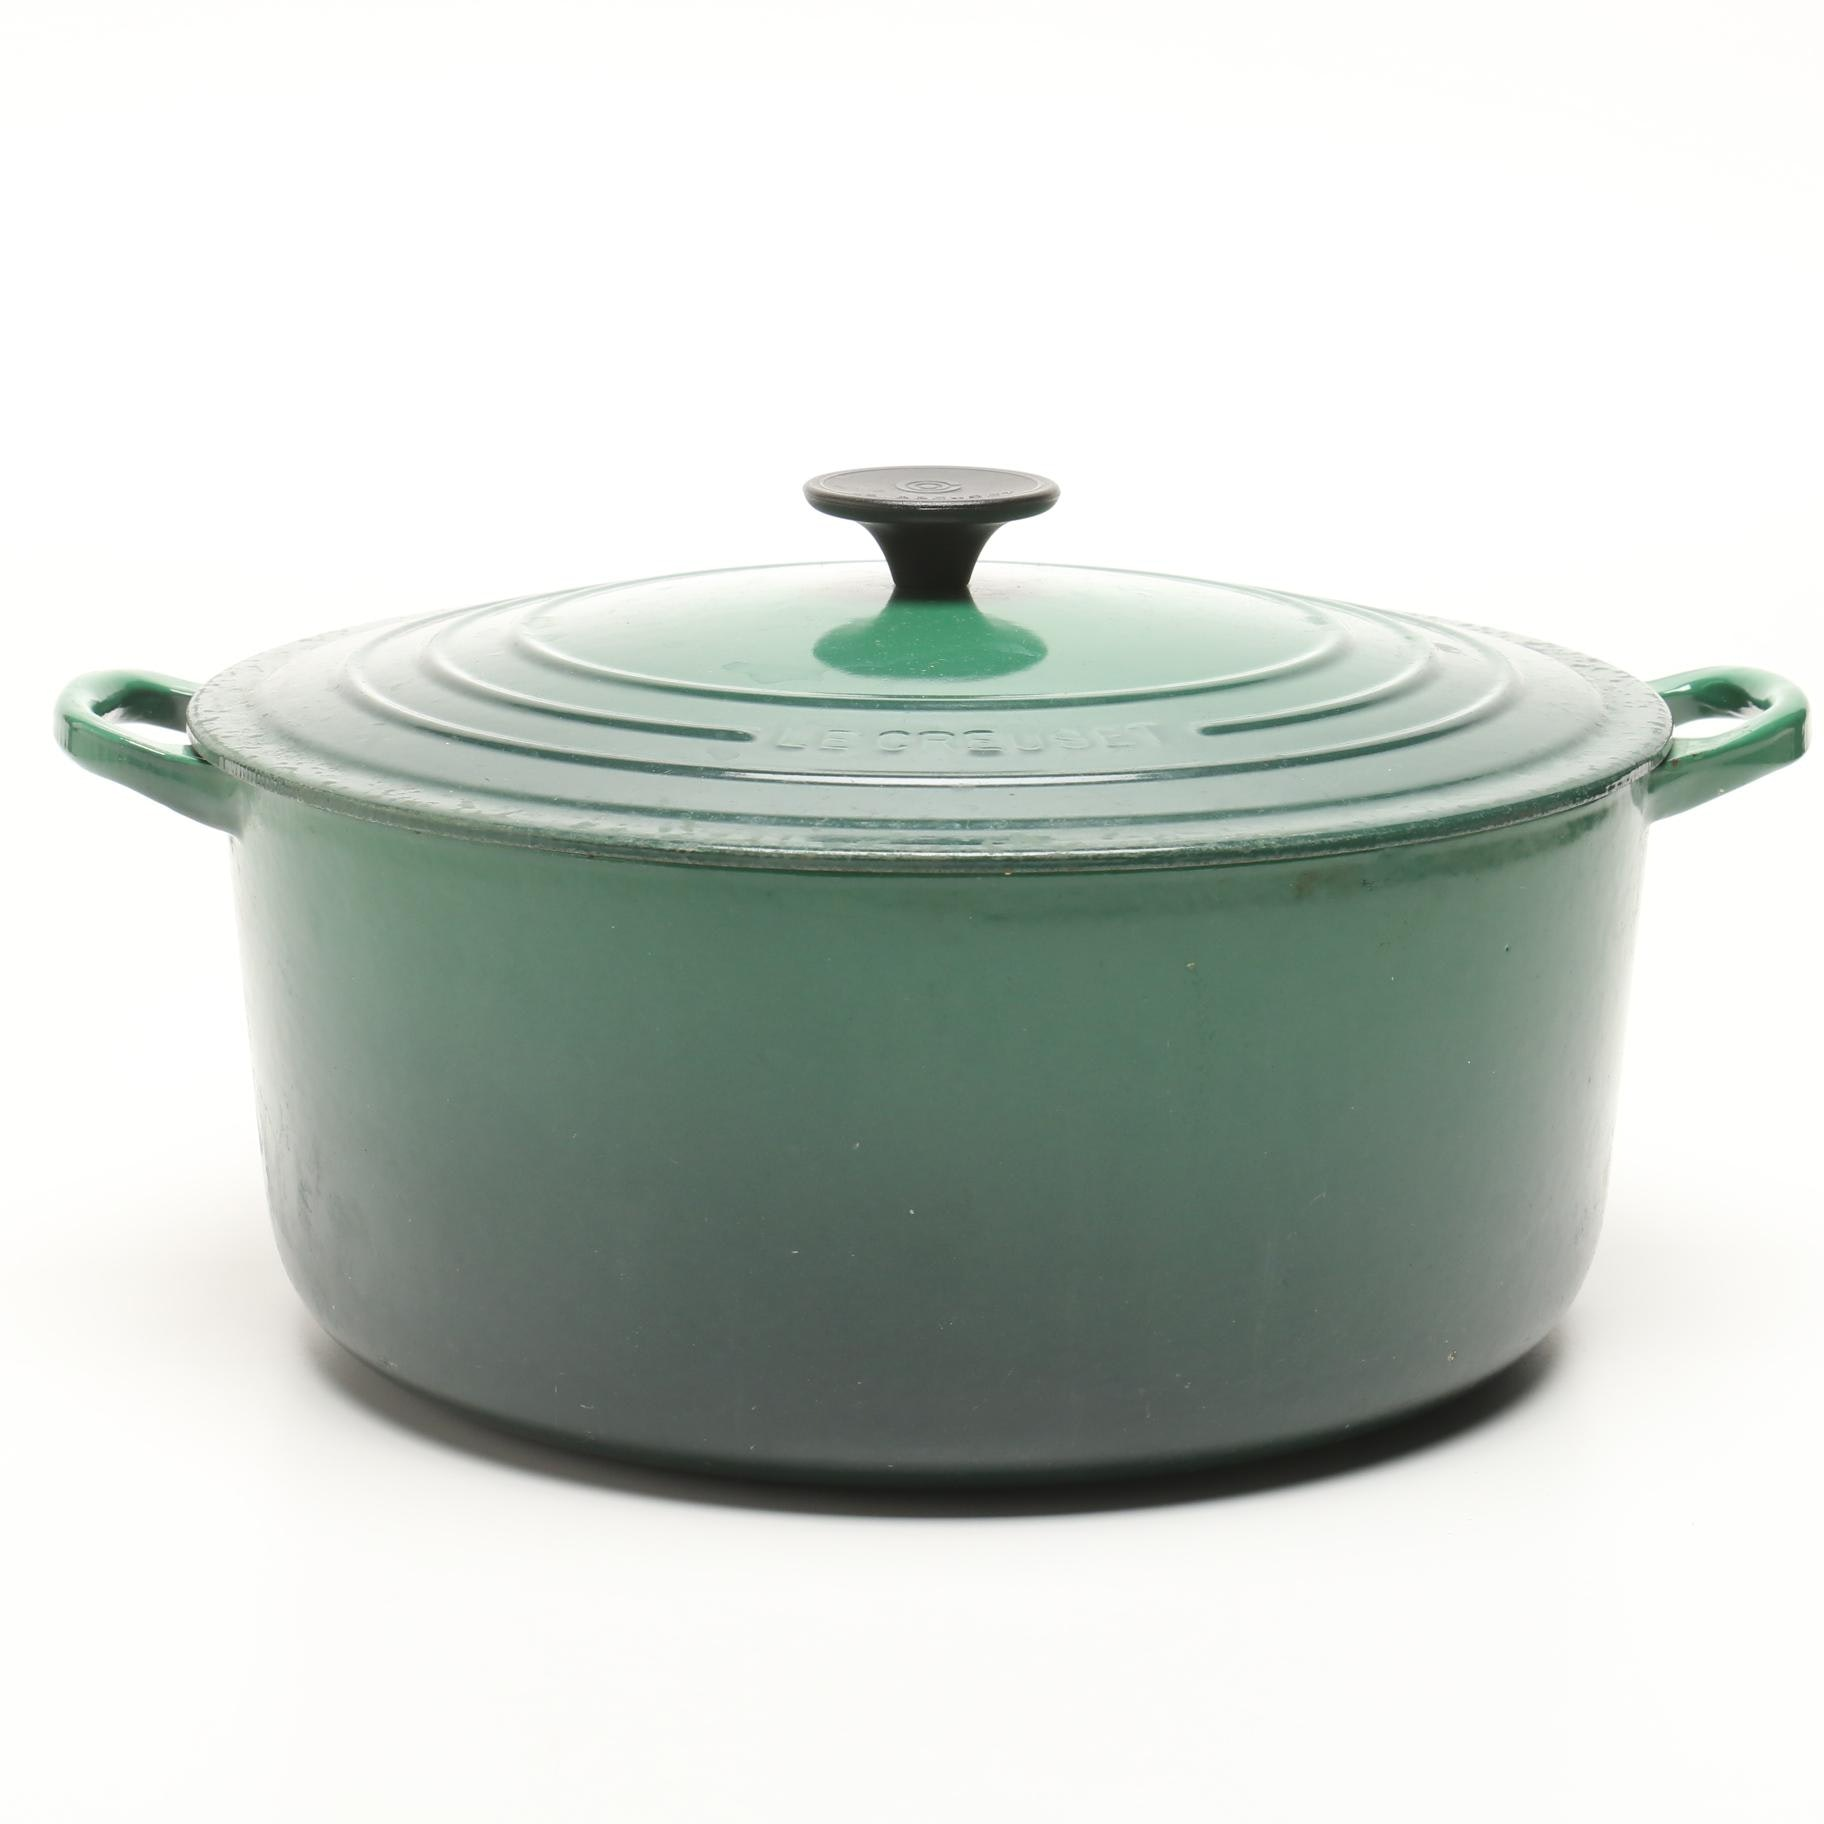 Le Creuset Green Lidded Stockpot